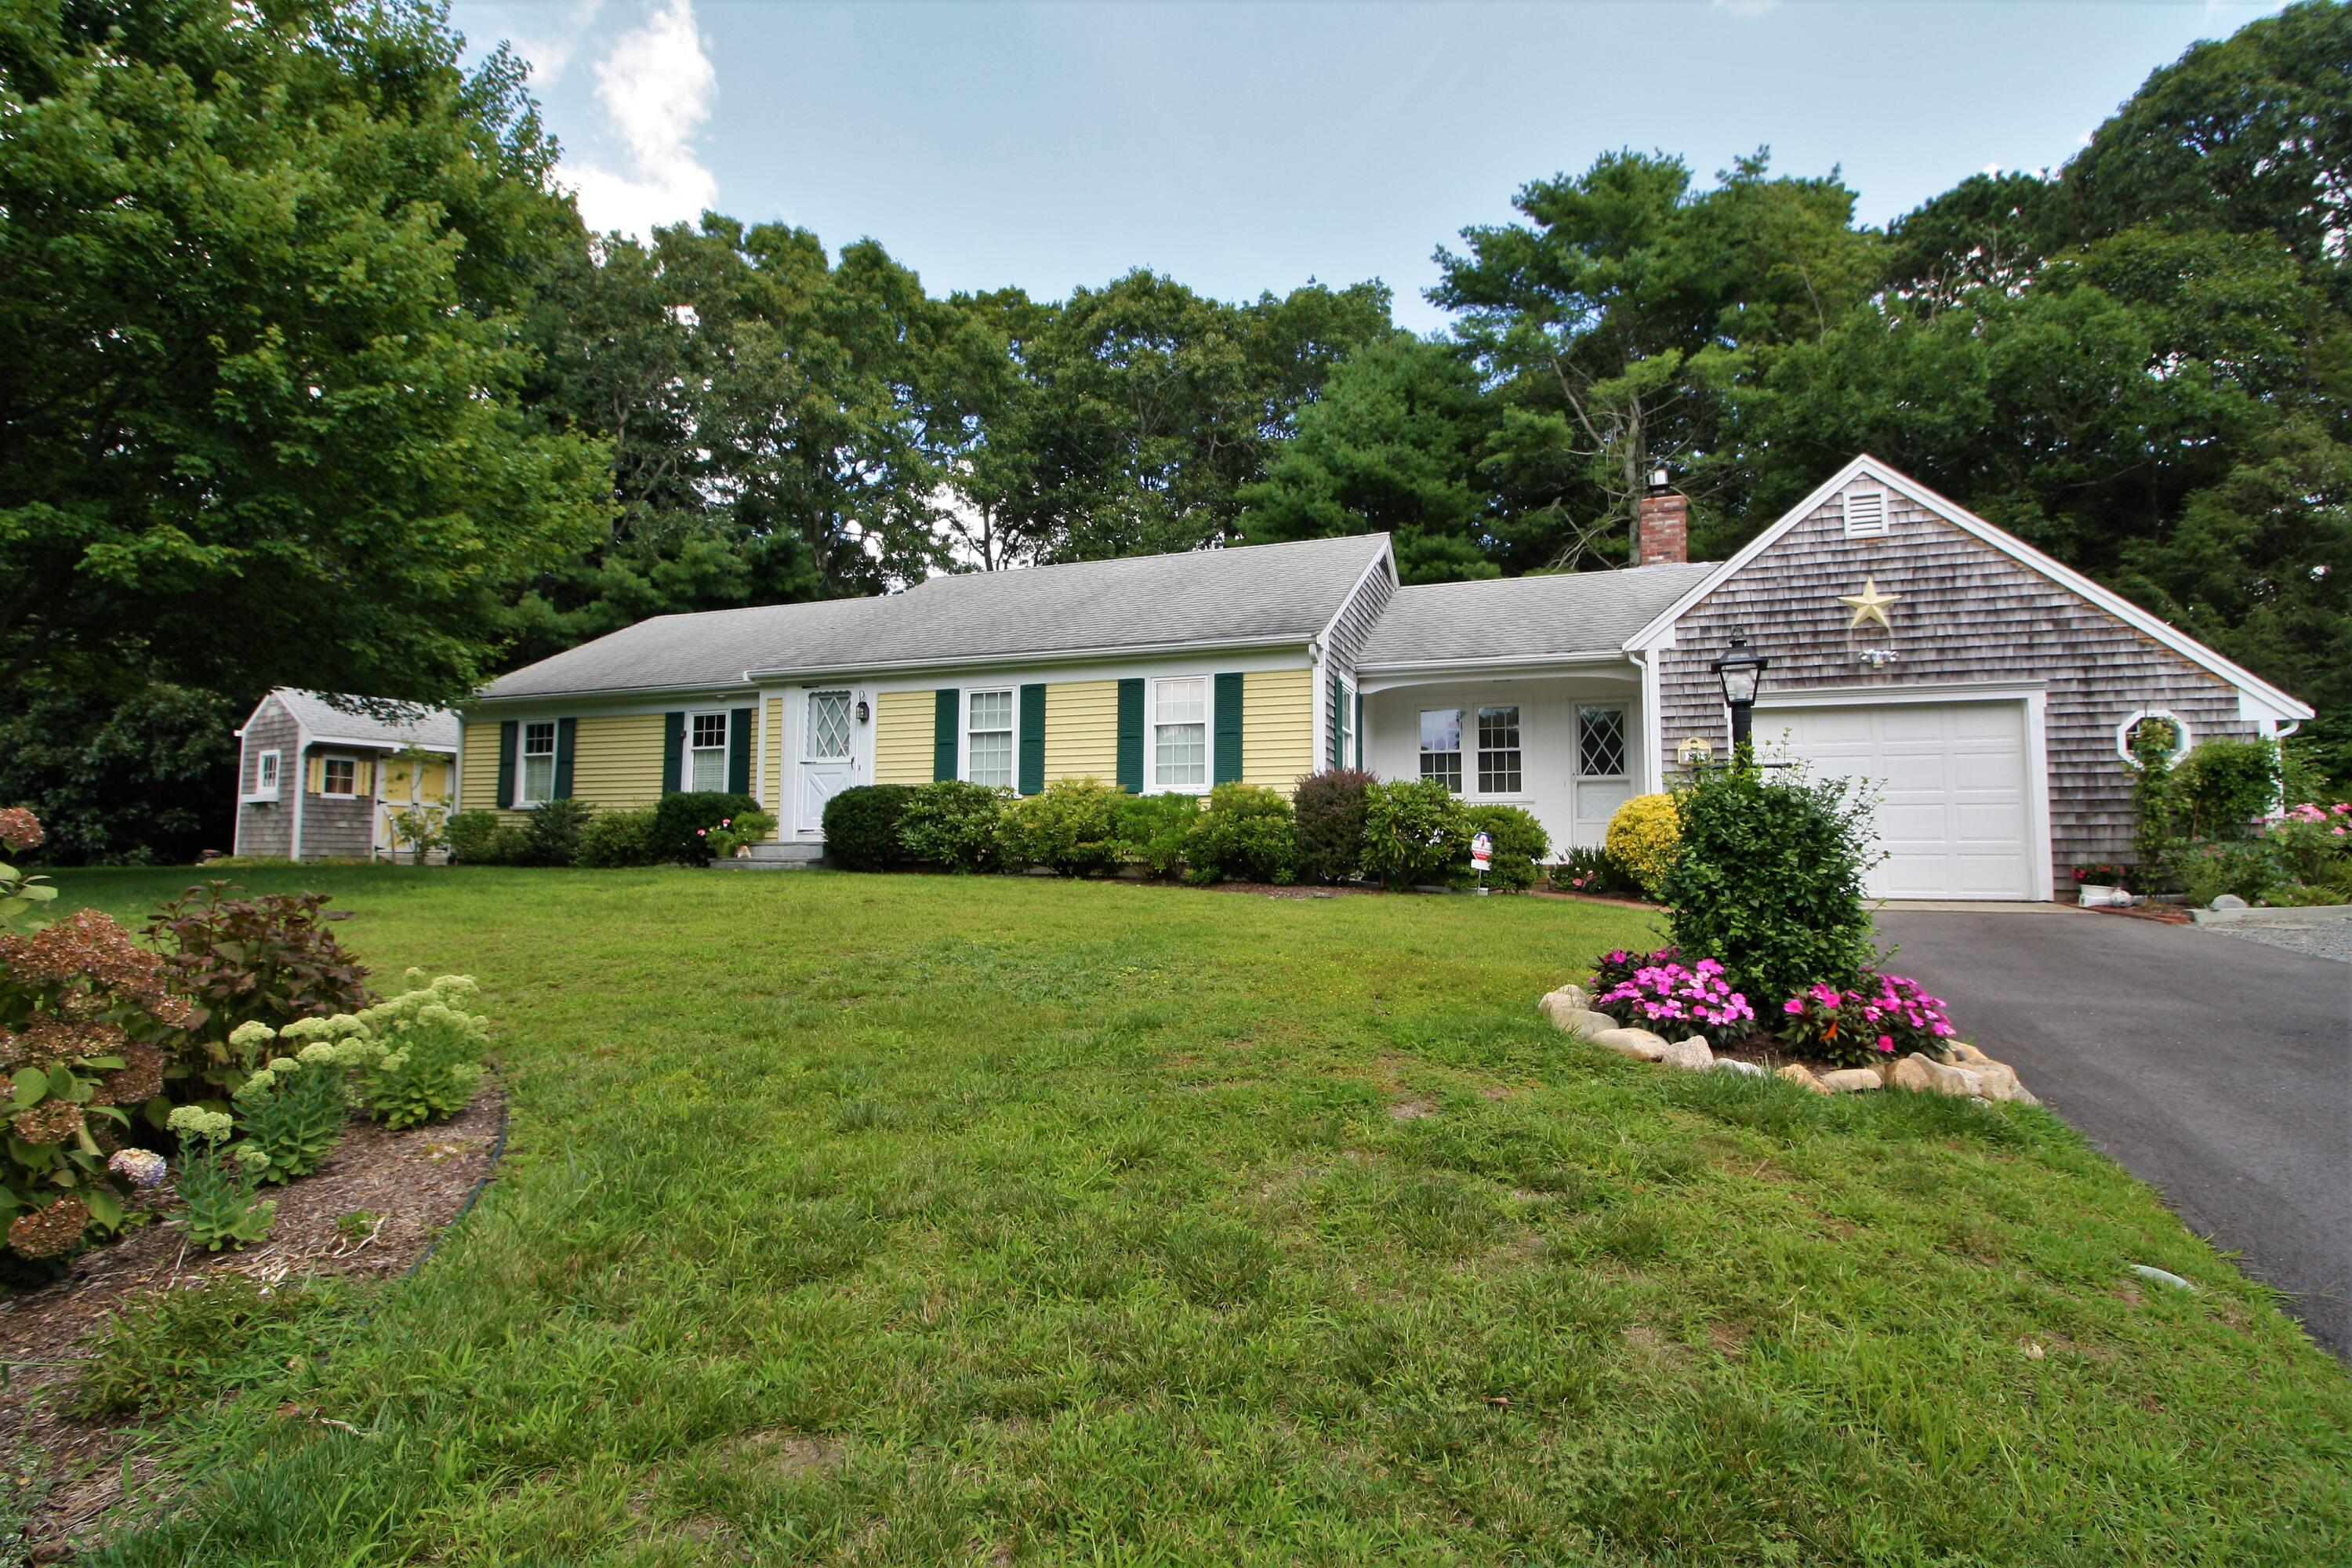 20 Wianno Road, Yarmouth Port MA, 02675 details